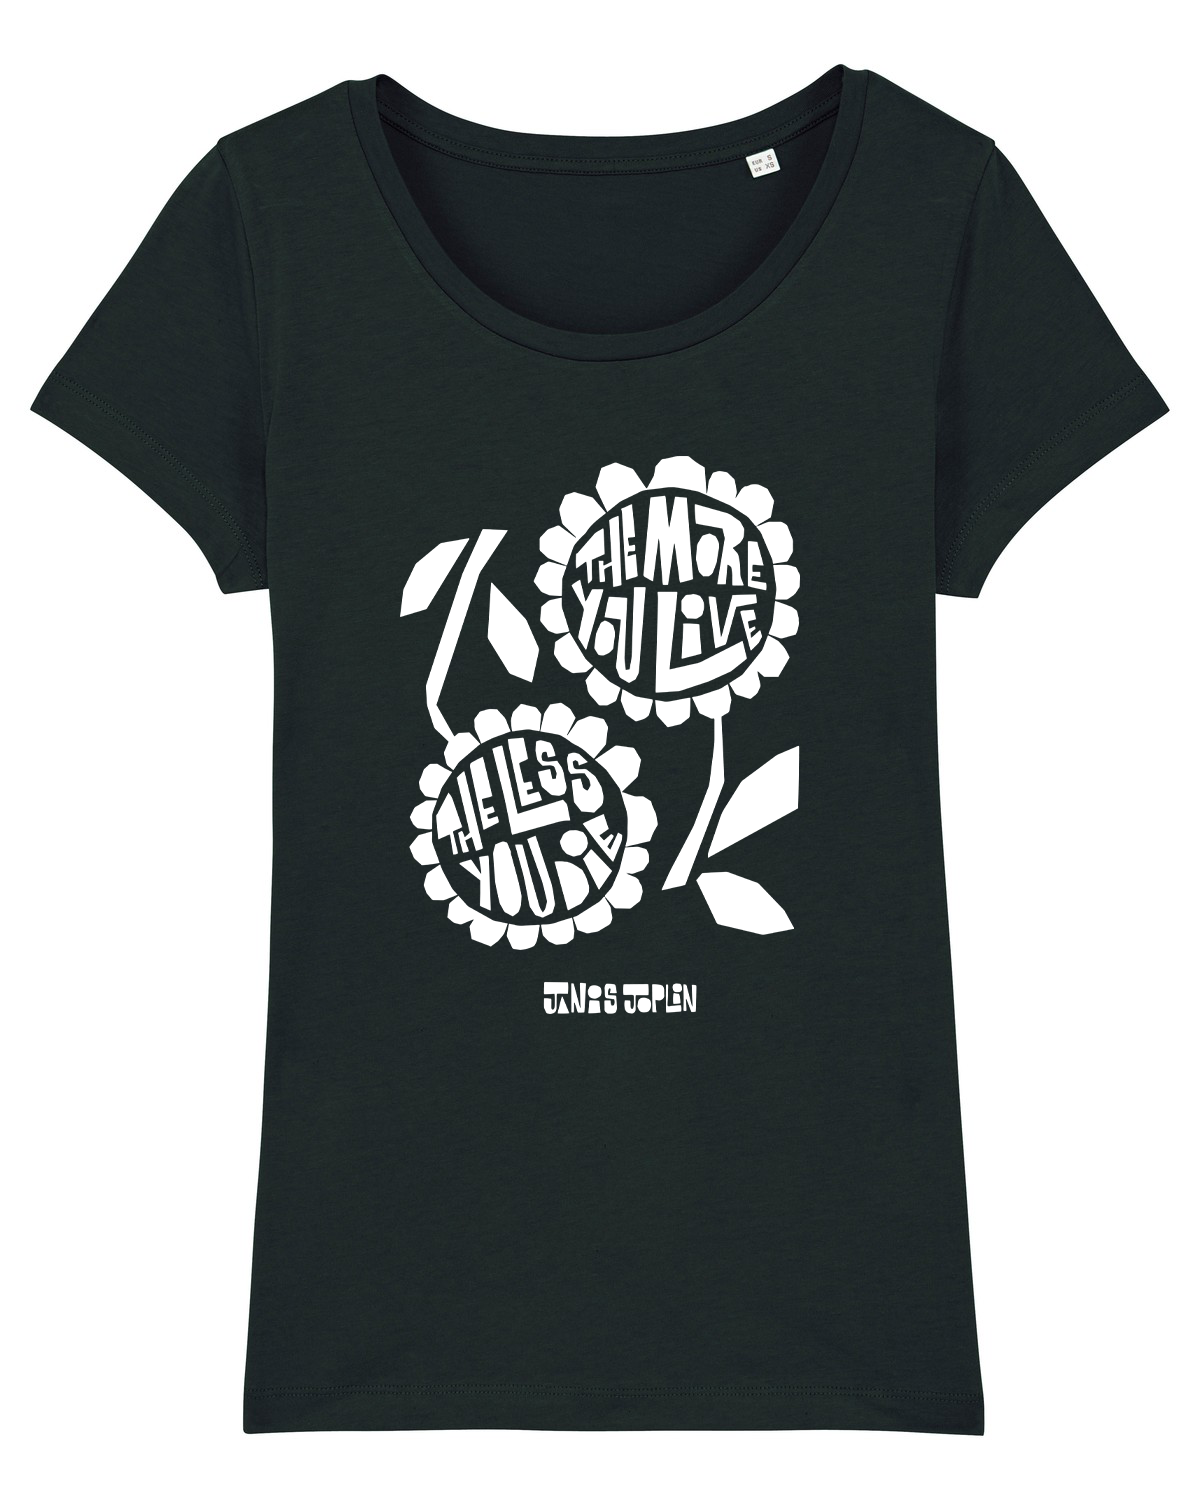 'The More You Live The Less You Die' Organic Womens T-shirt